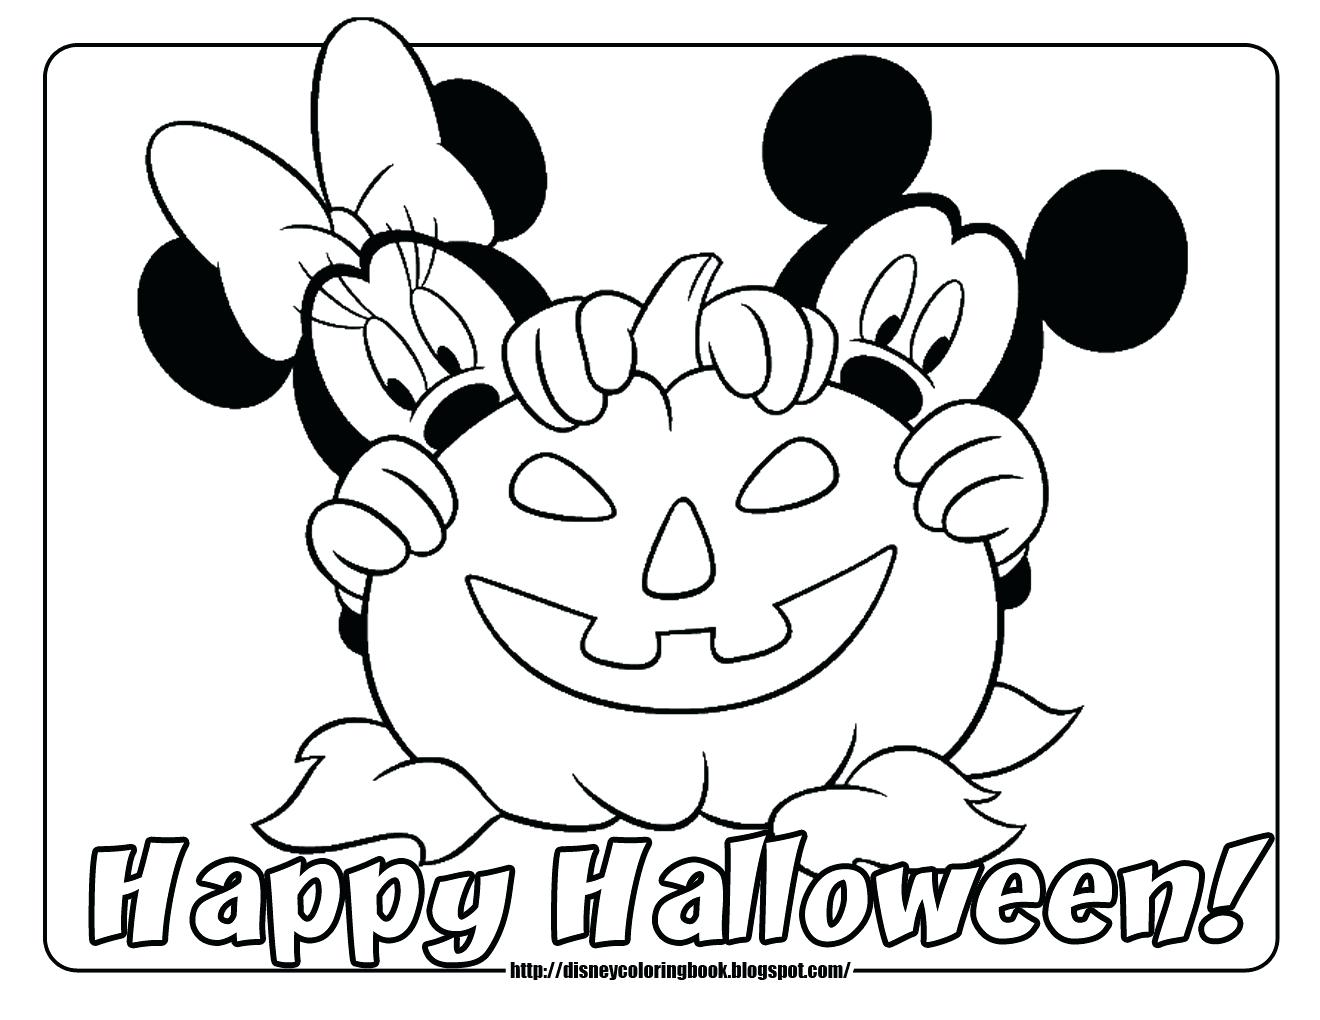 1320x1020 Coloring Pages Halloween Coloring Pages To Print Mickey Mouse